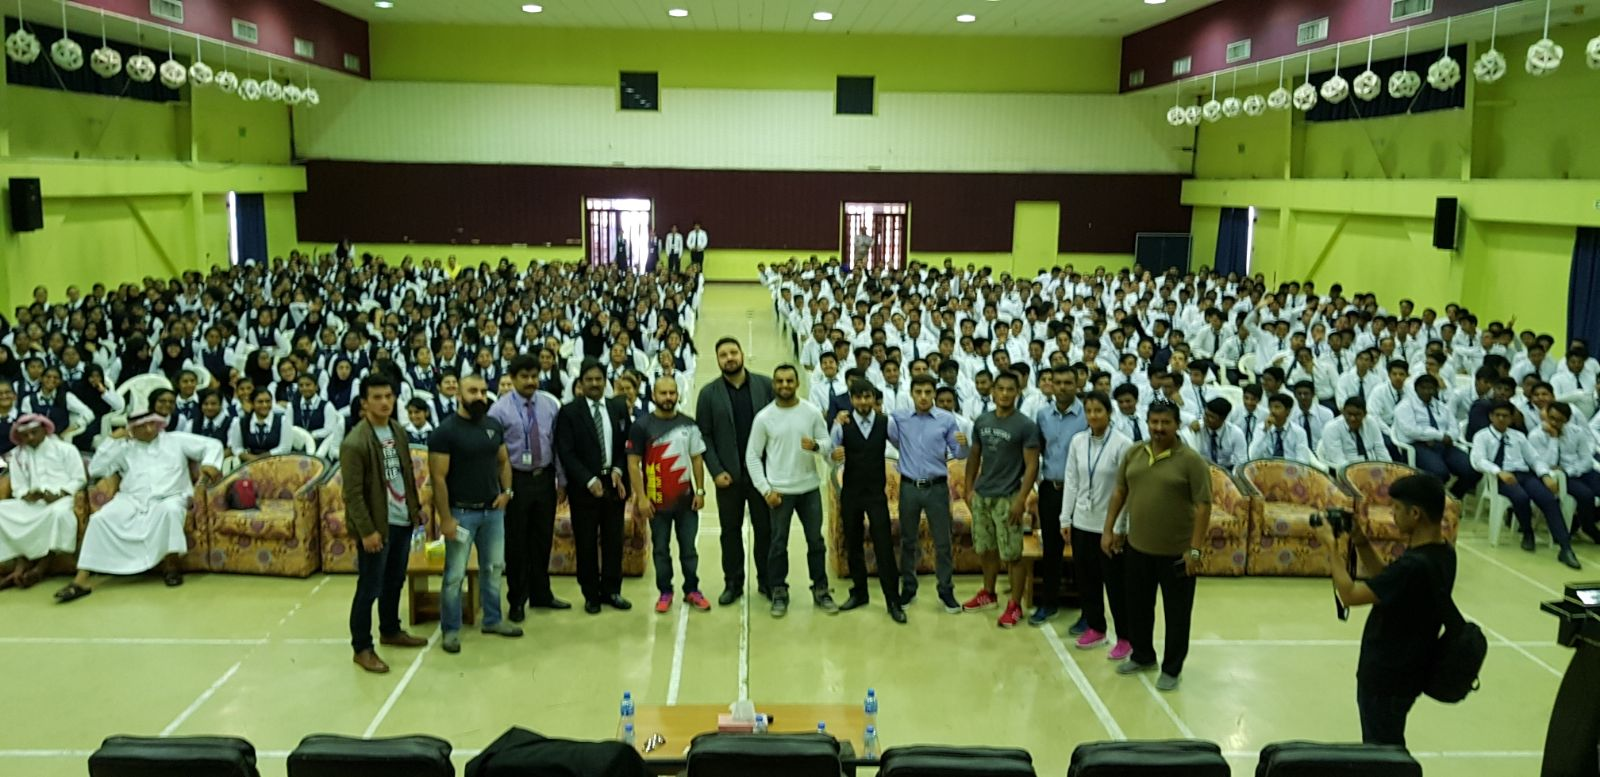 Before Brave title fight, Mangat drags crowd; becomes instant hero to students in Bahrain -